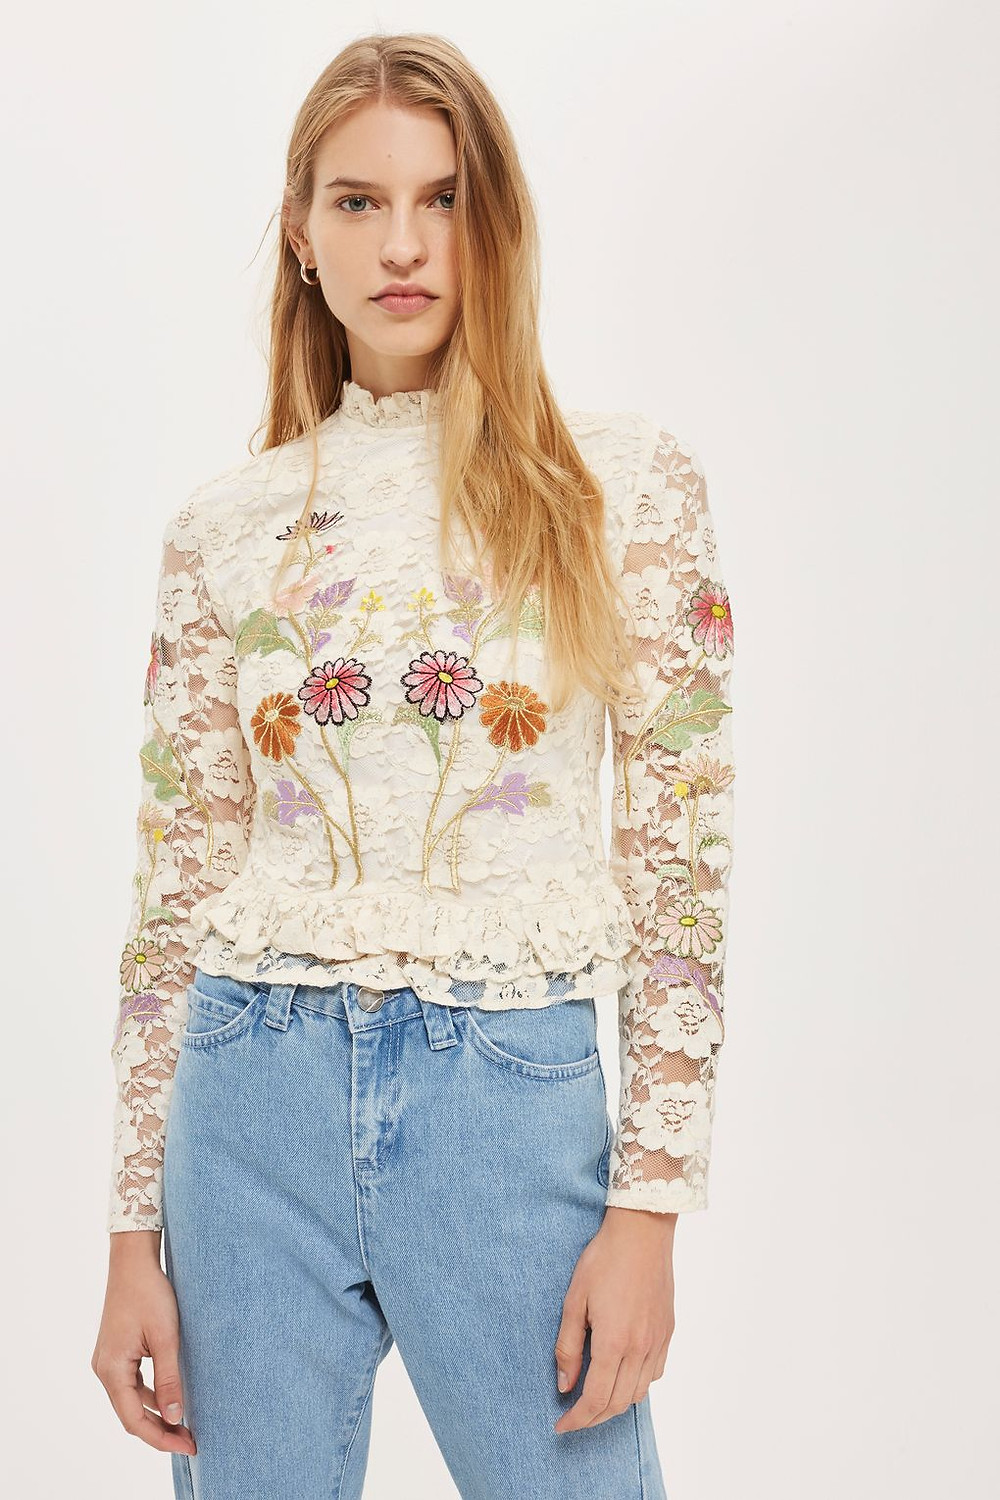 Topshop Lace Embroidered Peplum Top $100